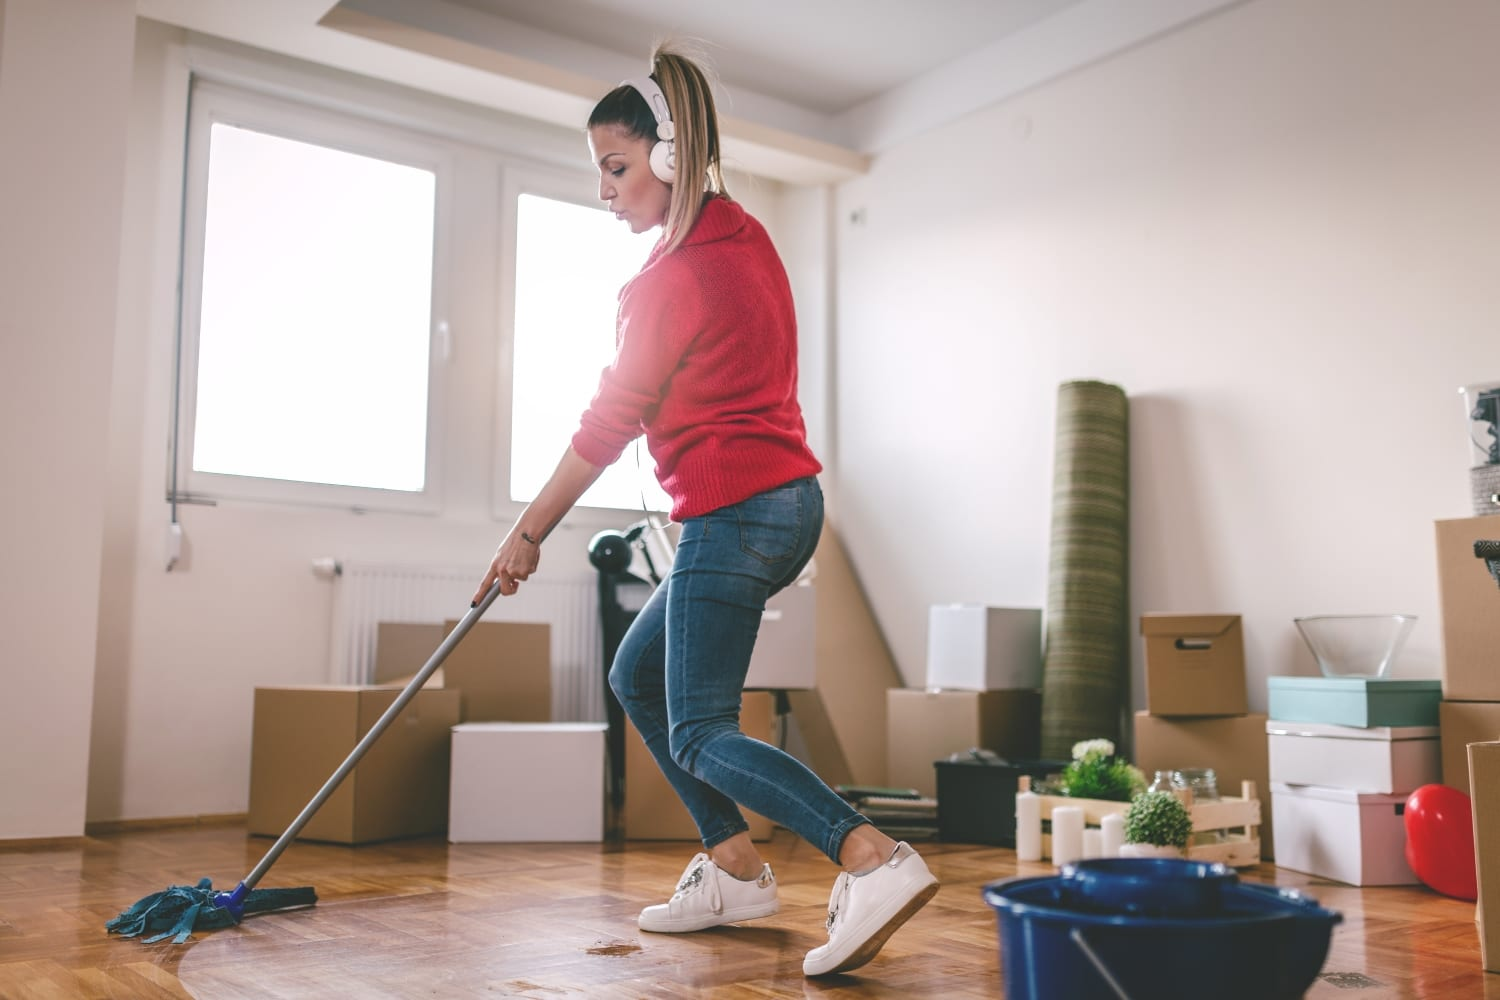 a woman cleaning her apartment before moving out so she can get her deposit back